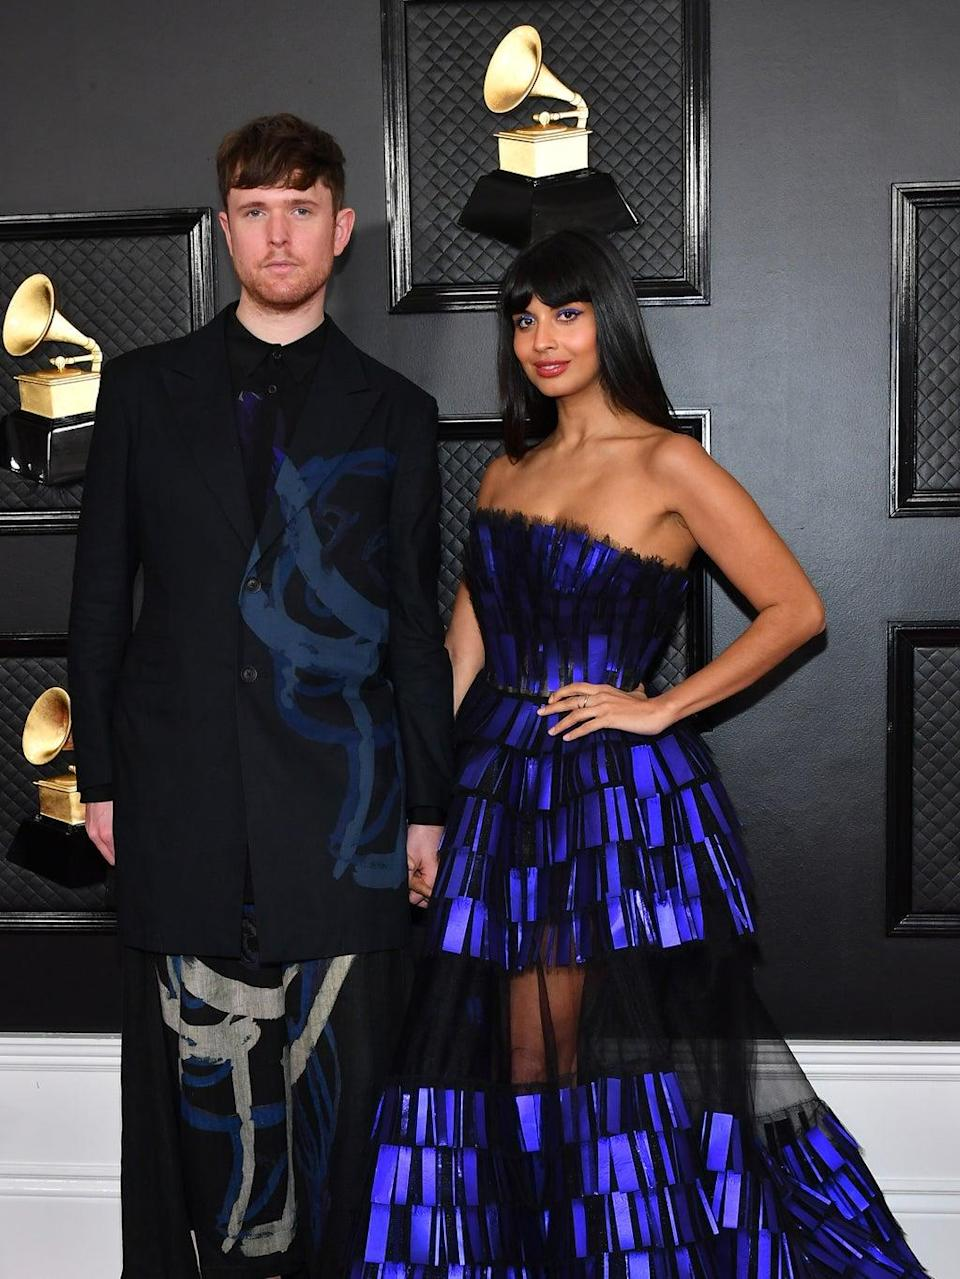 Blake and Jamil at the Grammy Awards, January 2020 (Getty Images)